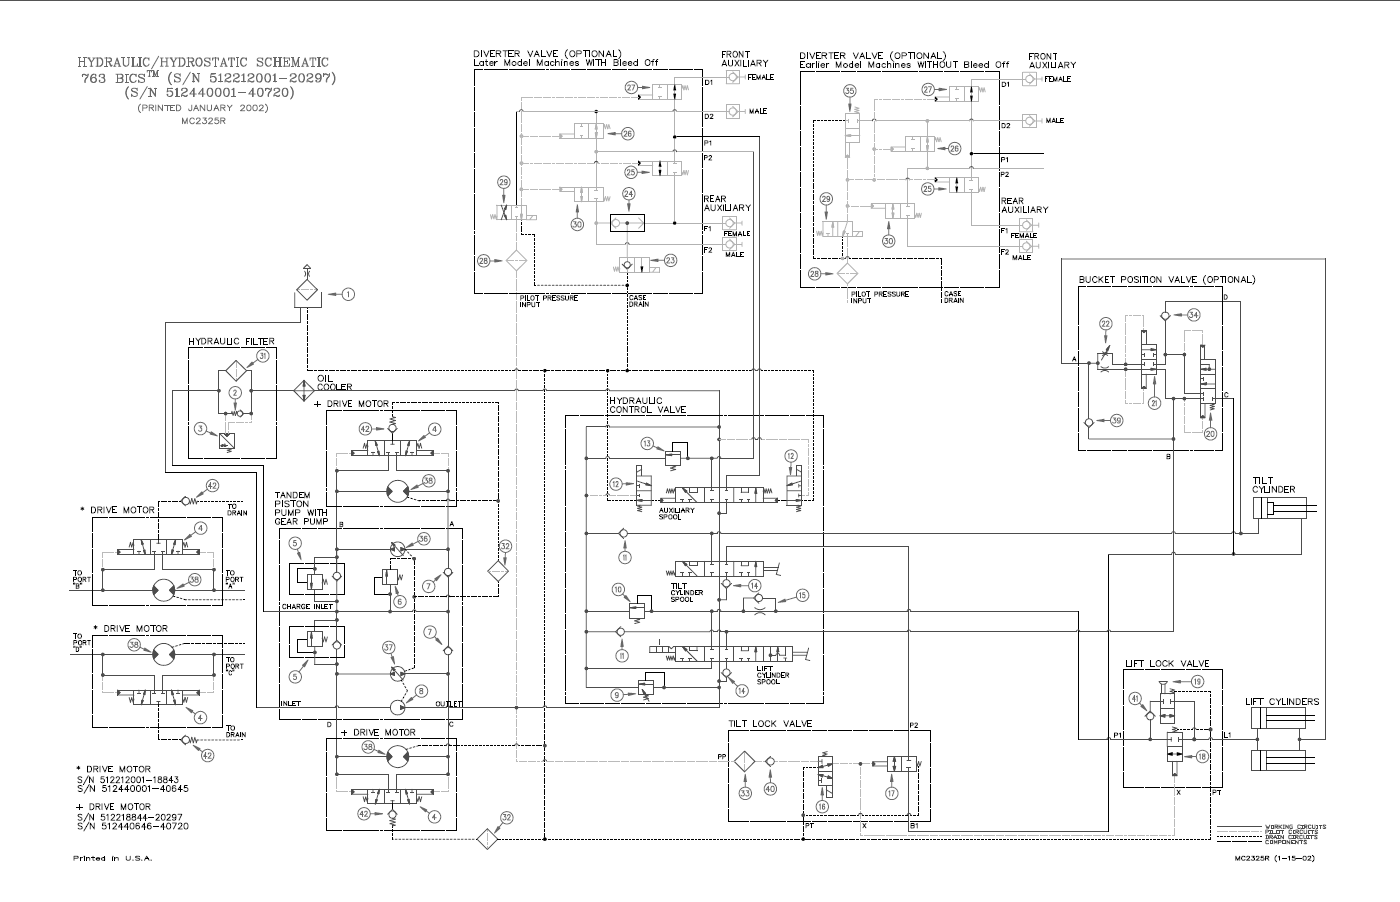 Bobcat 763 hydraulic system diagram